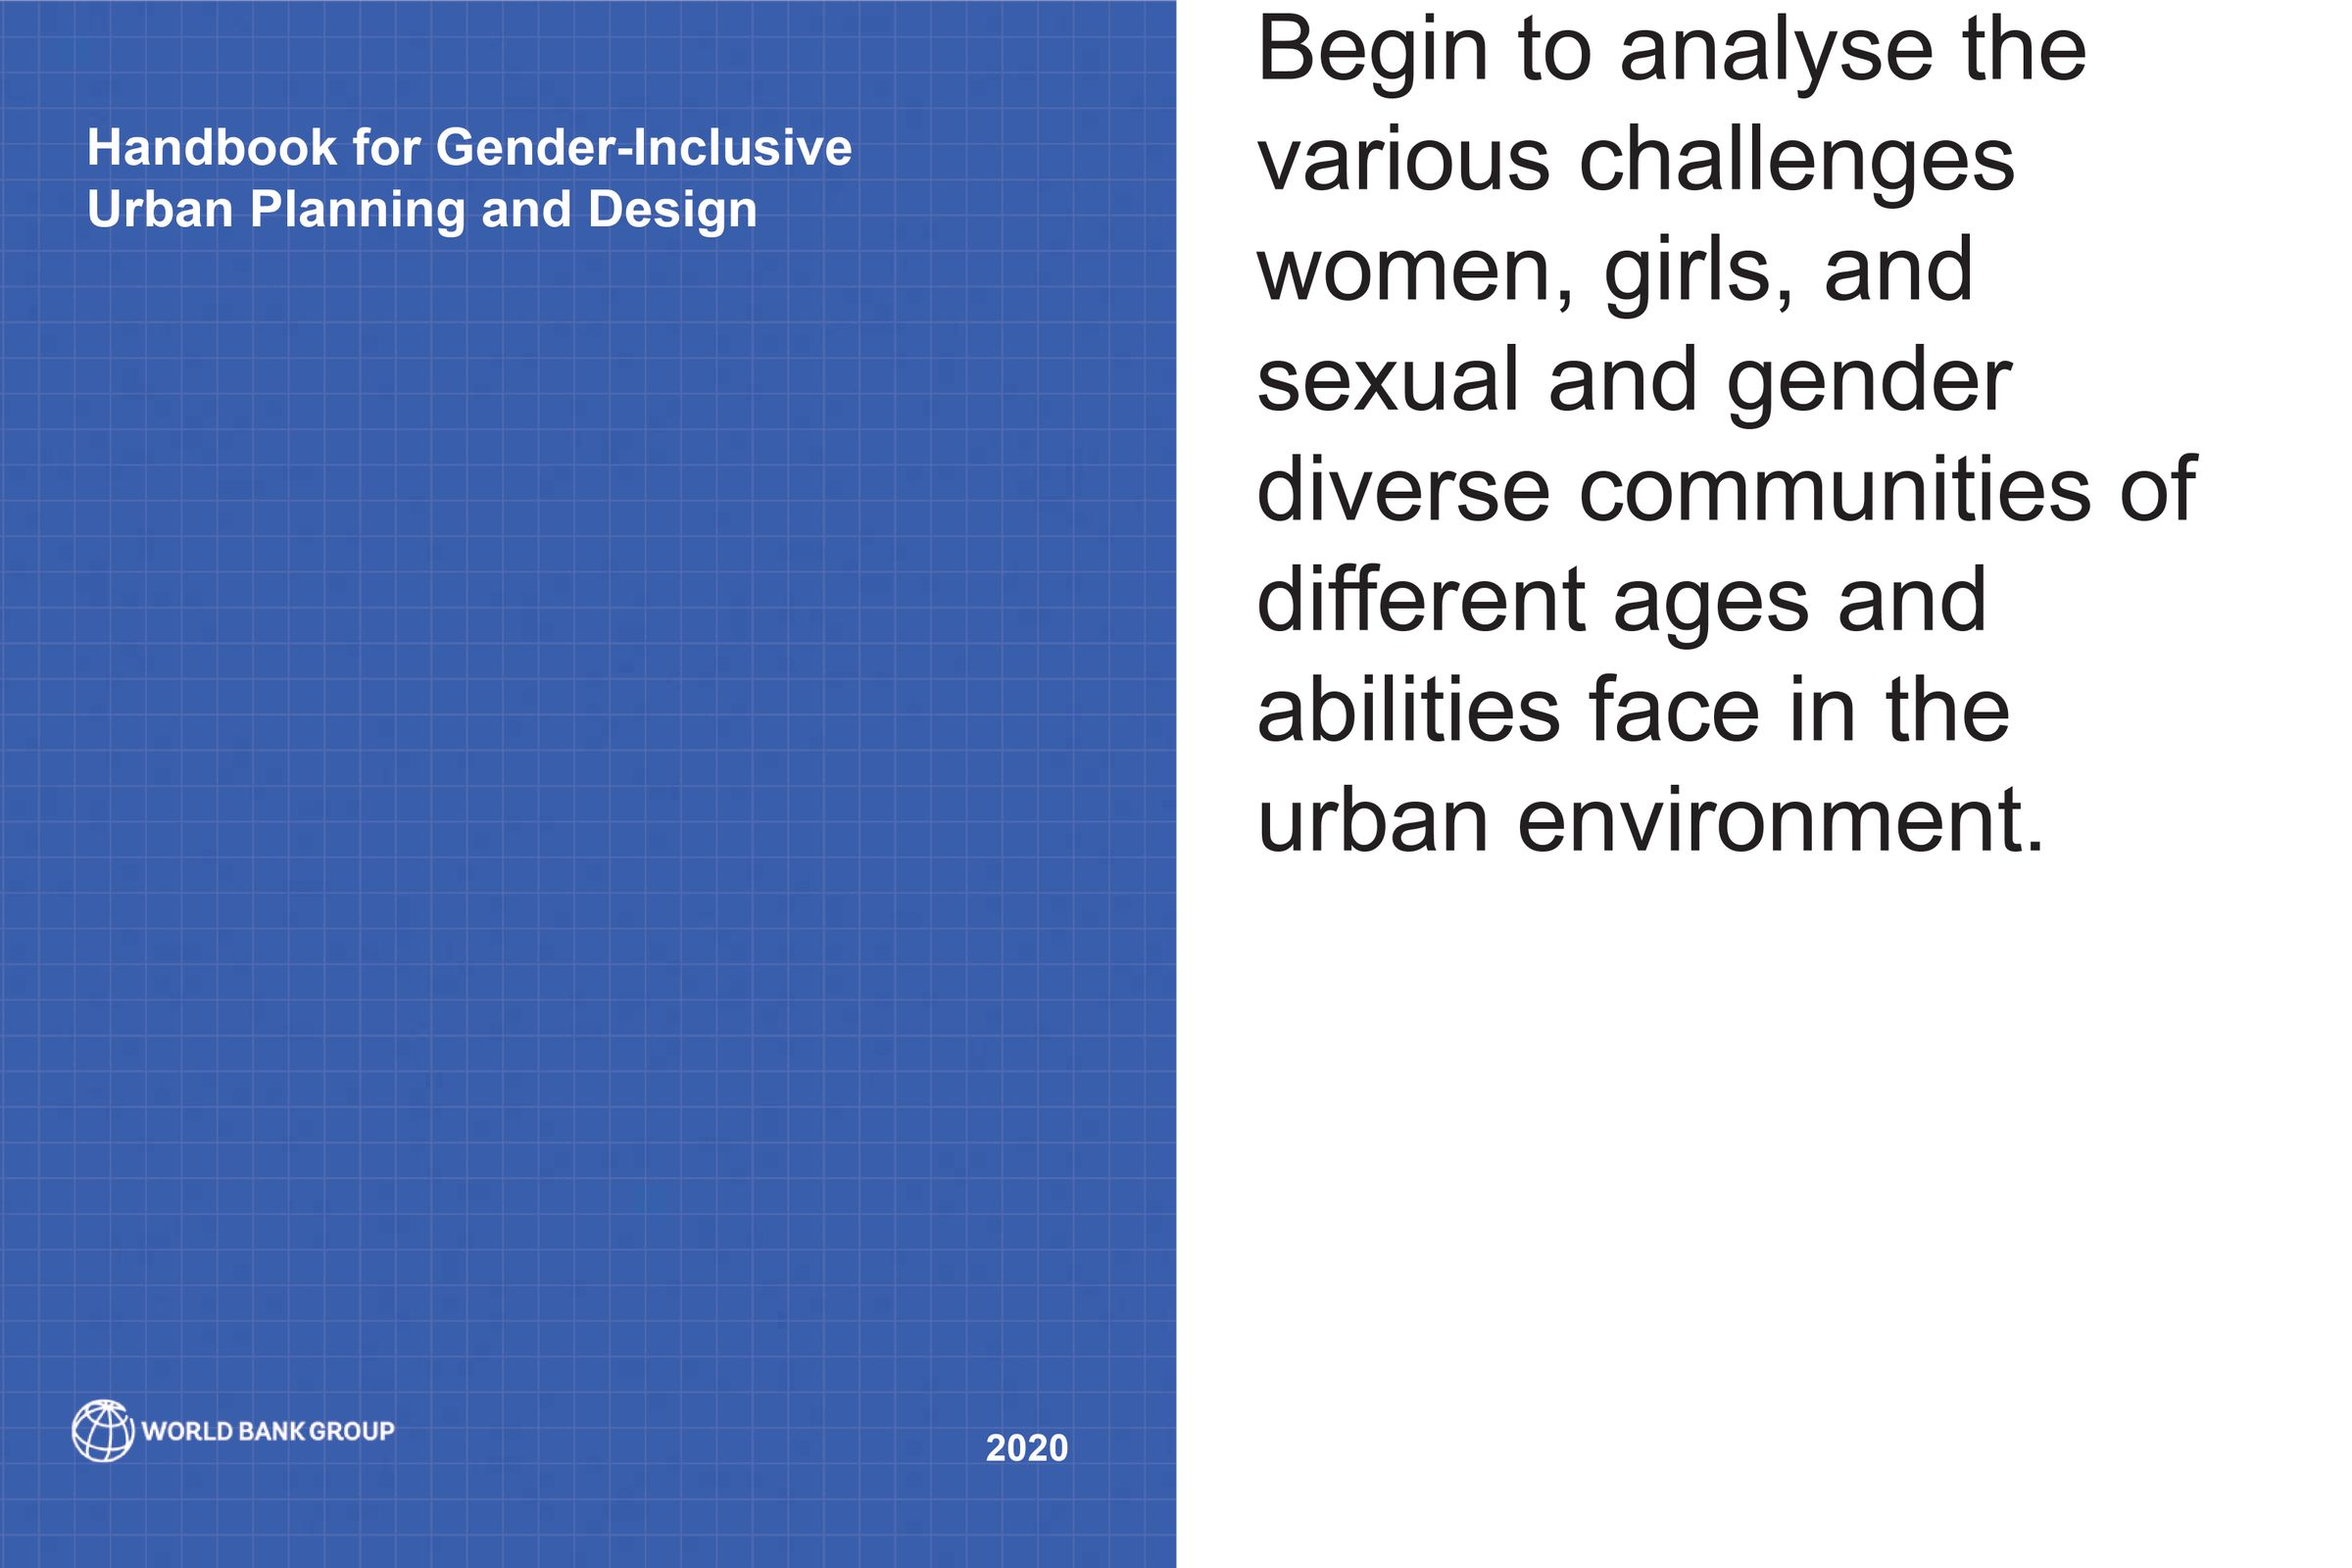 Challenge and Solution (engaging women, girls, and sexual and gender diverse communities in design) - begin to analyse the various challenges women, girls, and sexual and gender diverse communities of different ages and abilities face in the urban environment.